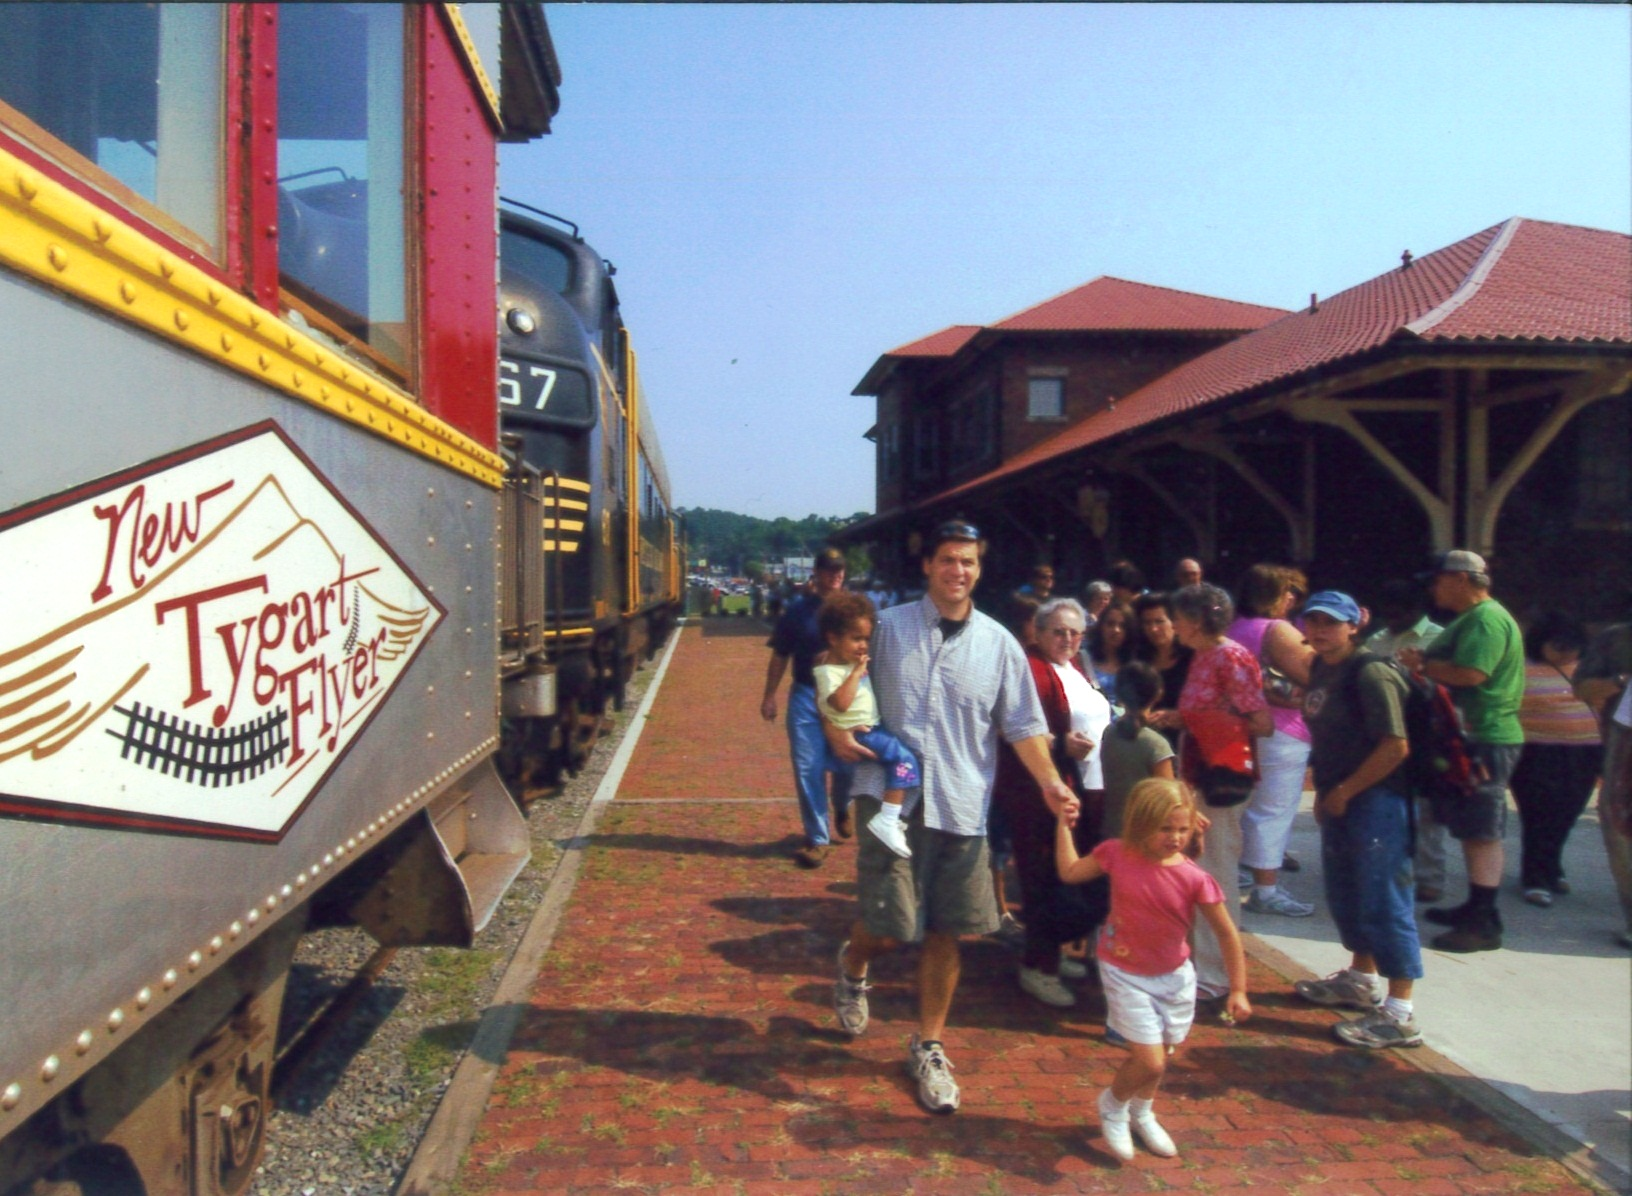 A tourist excursion train with passengers disembarking  beside the historic Elkins depot.